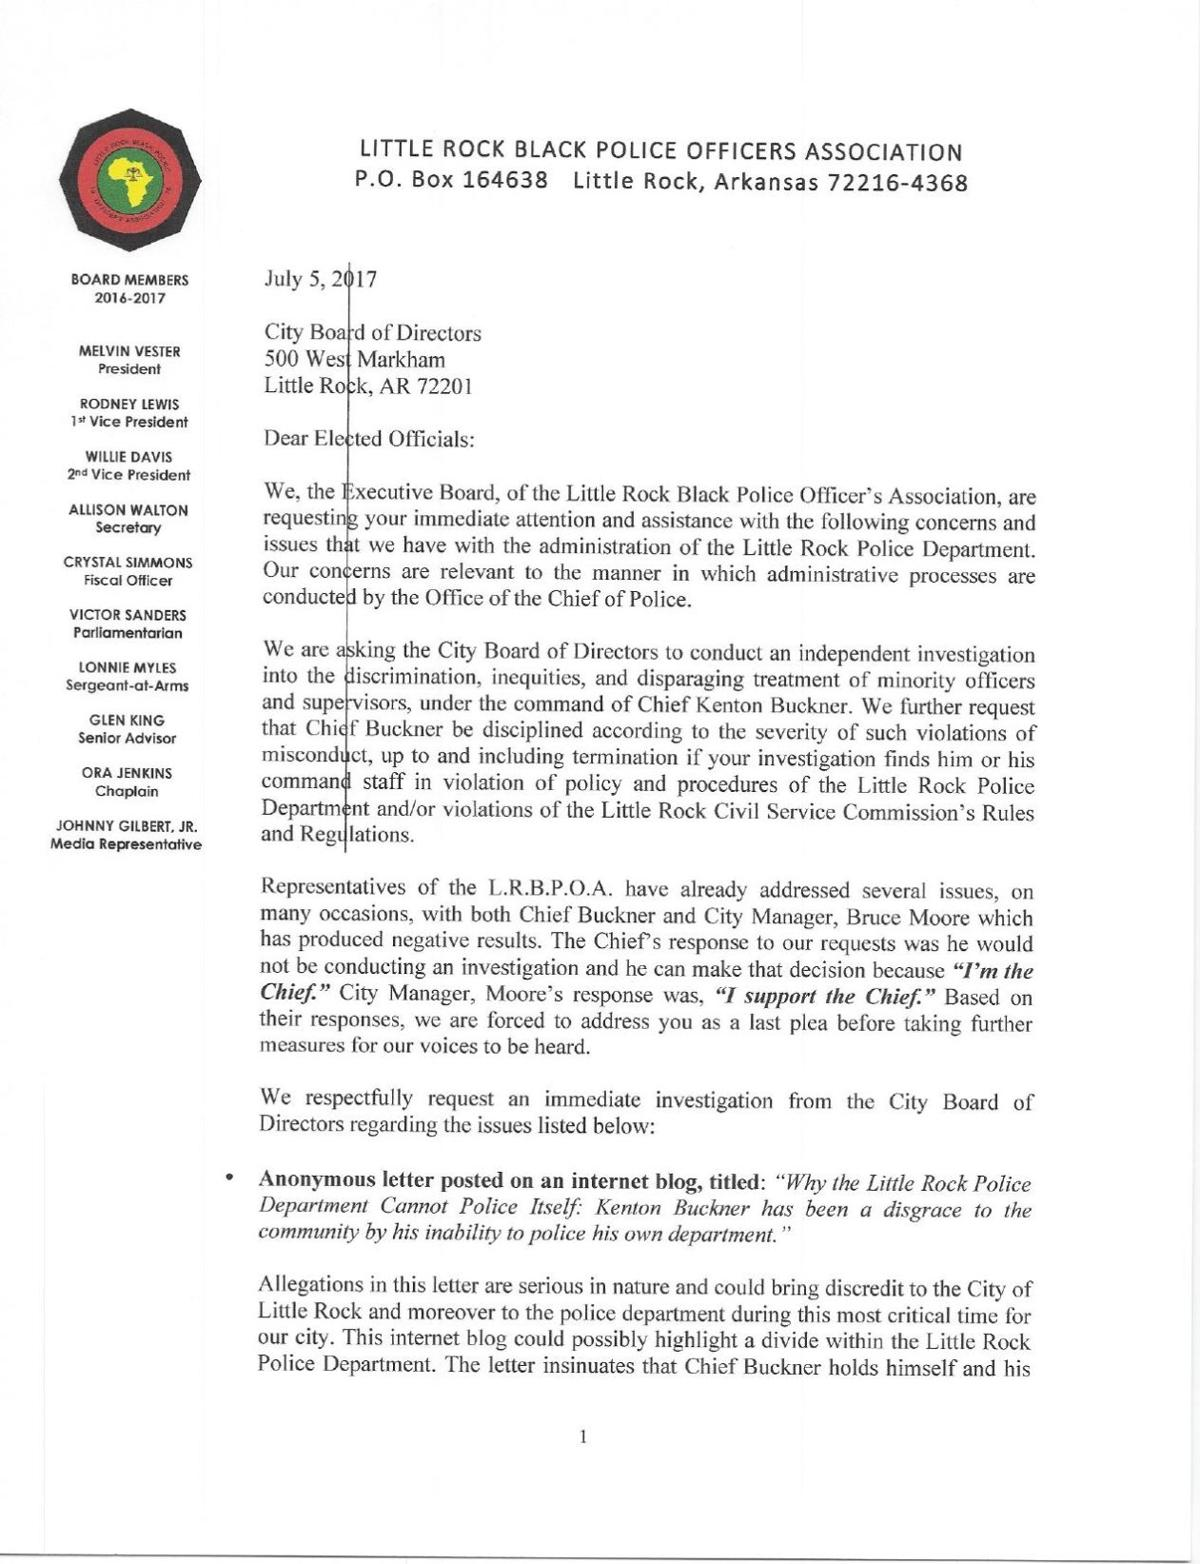 Complaint about Little Rock police chief